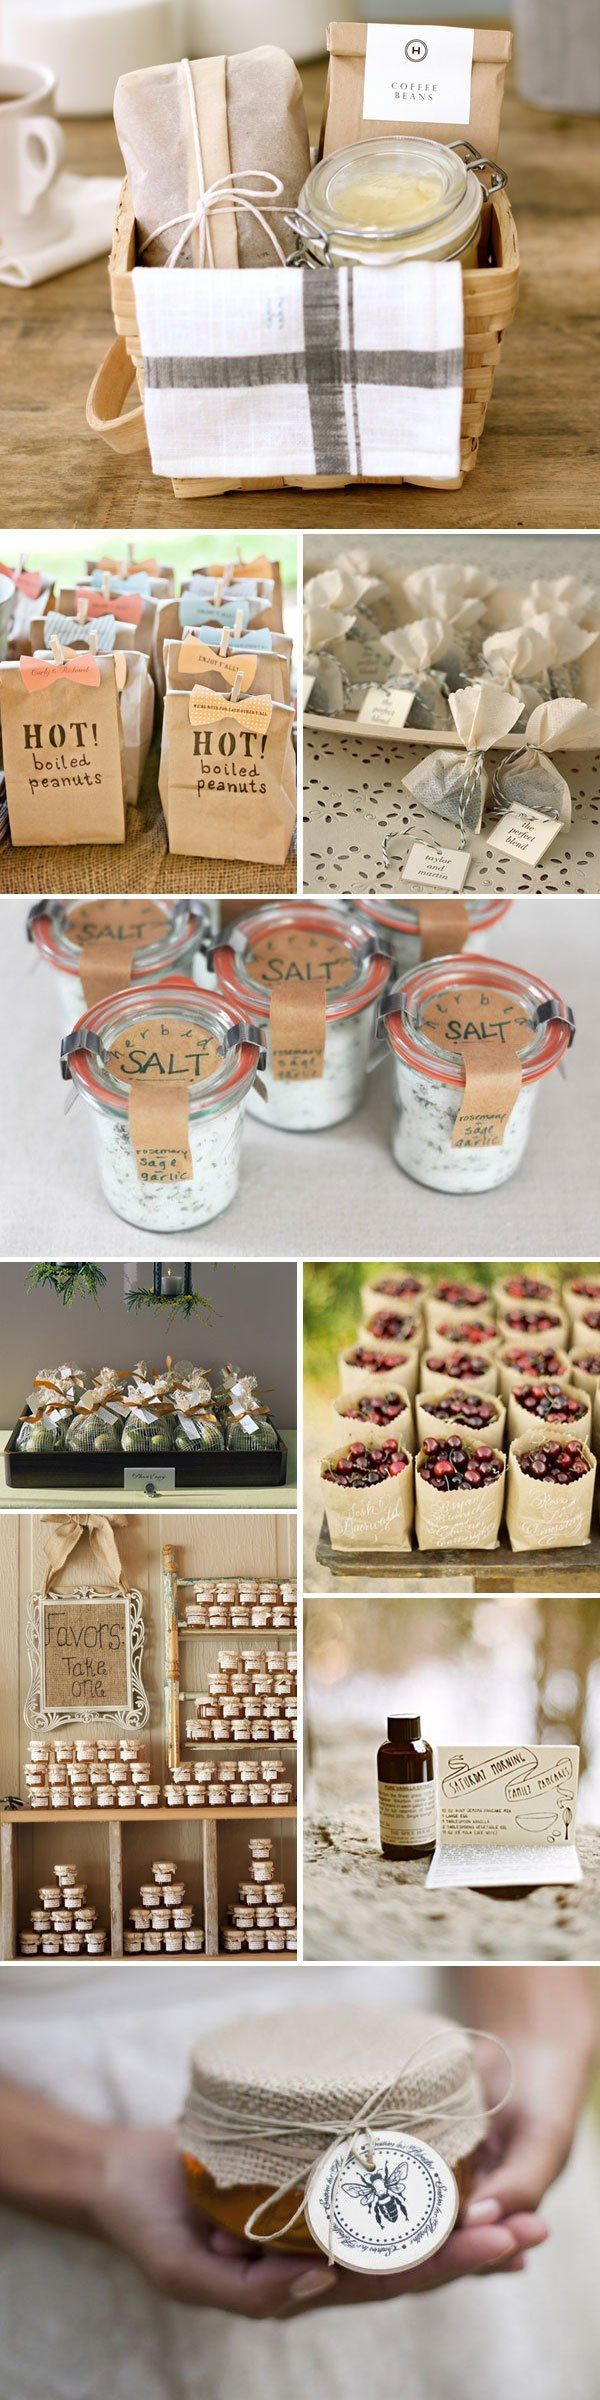 Here are a couple ideas for handmade party favors that will wow your guests! #handmade #summer